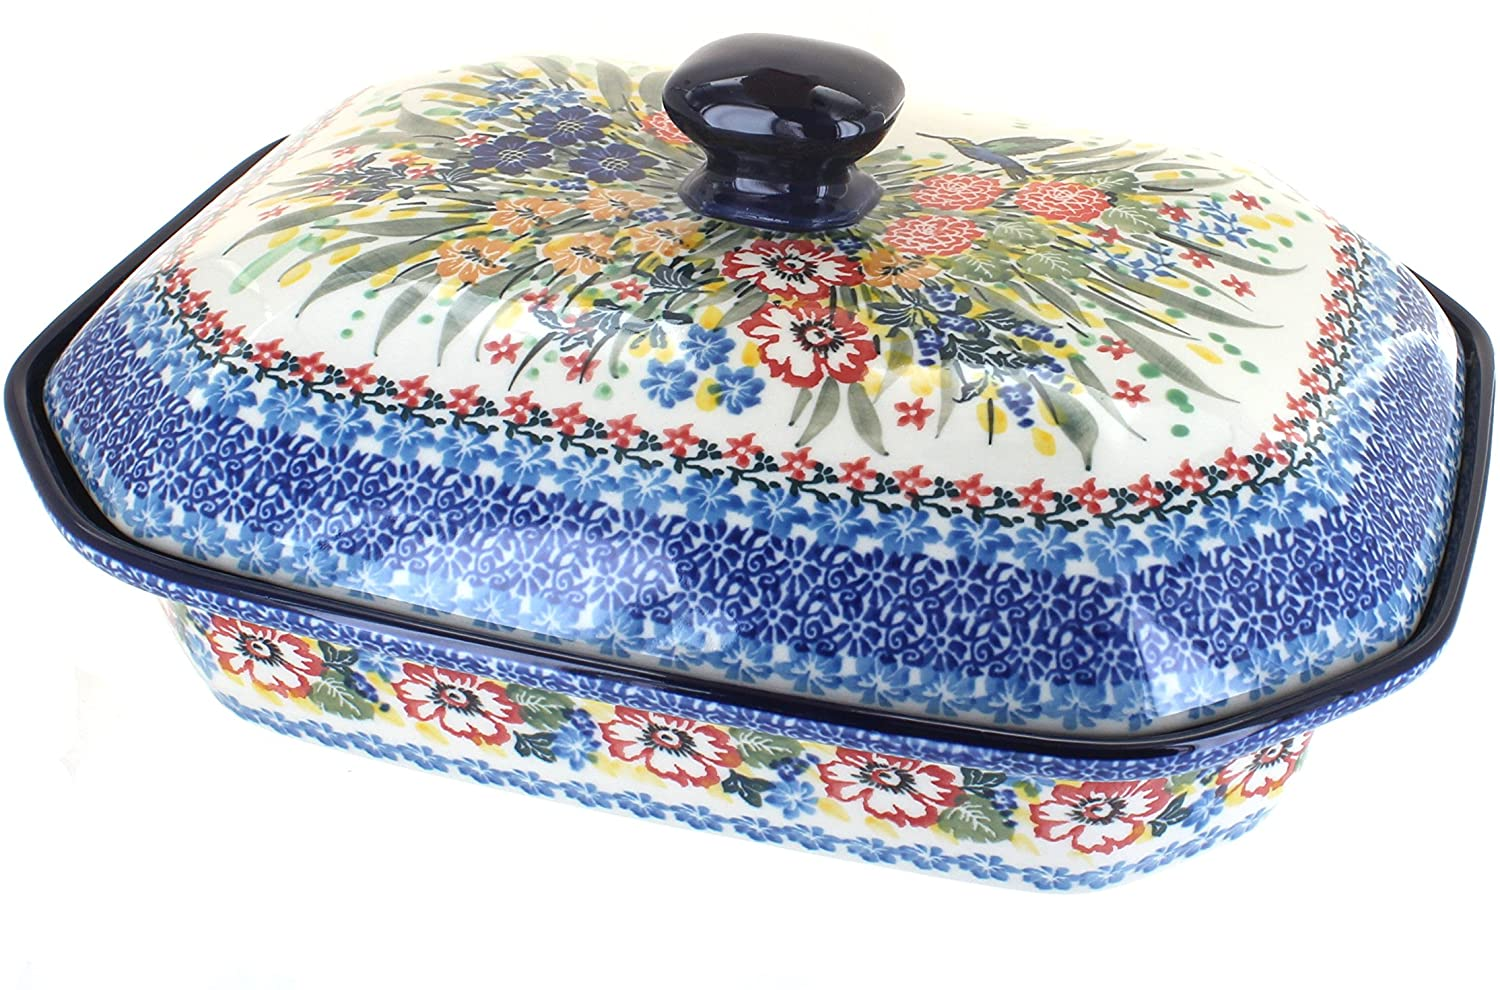 Blue Rose Polish Pottery Hummingbird Large Covered Baking Dish